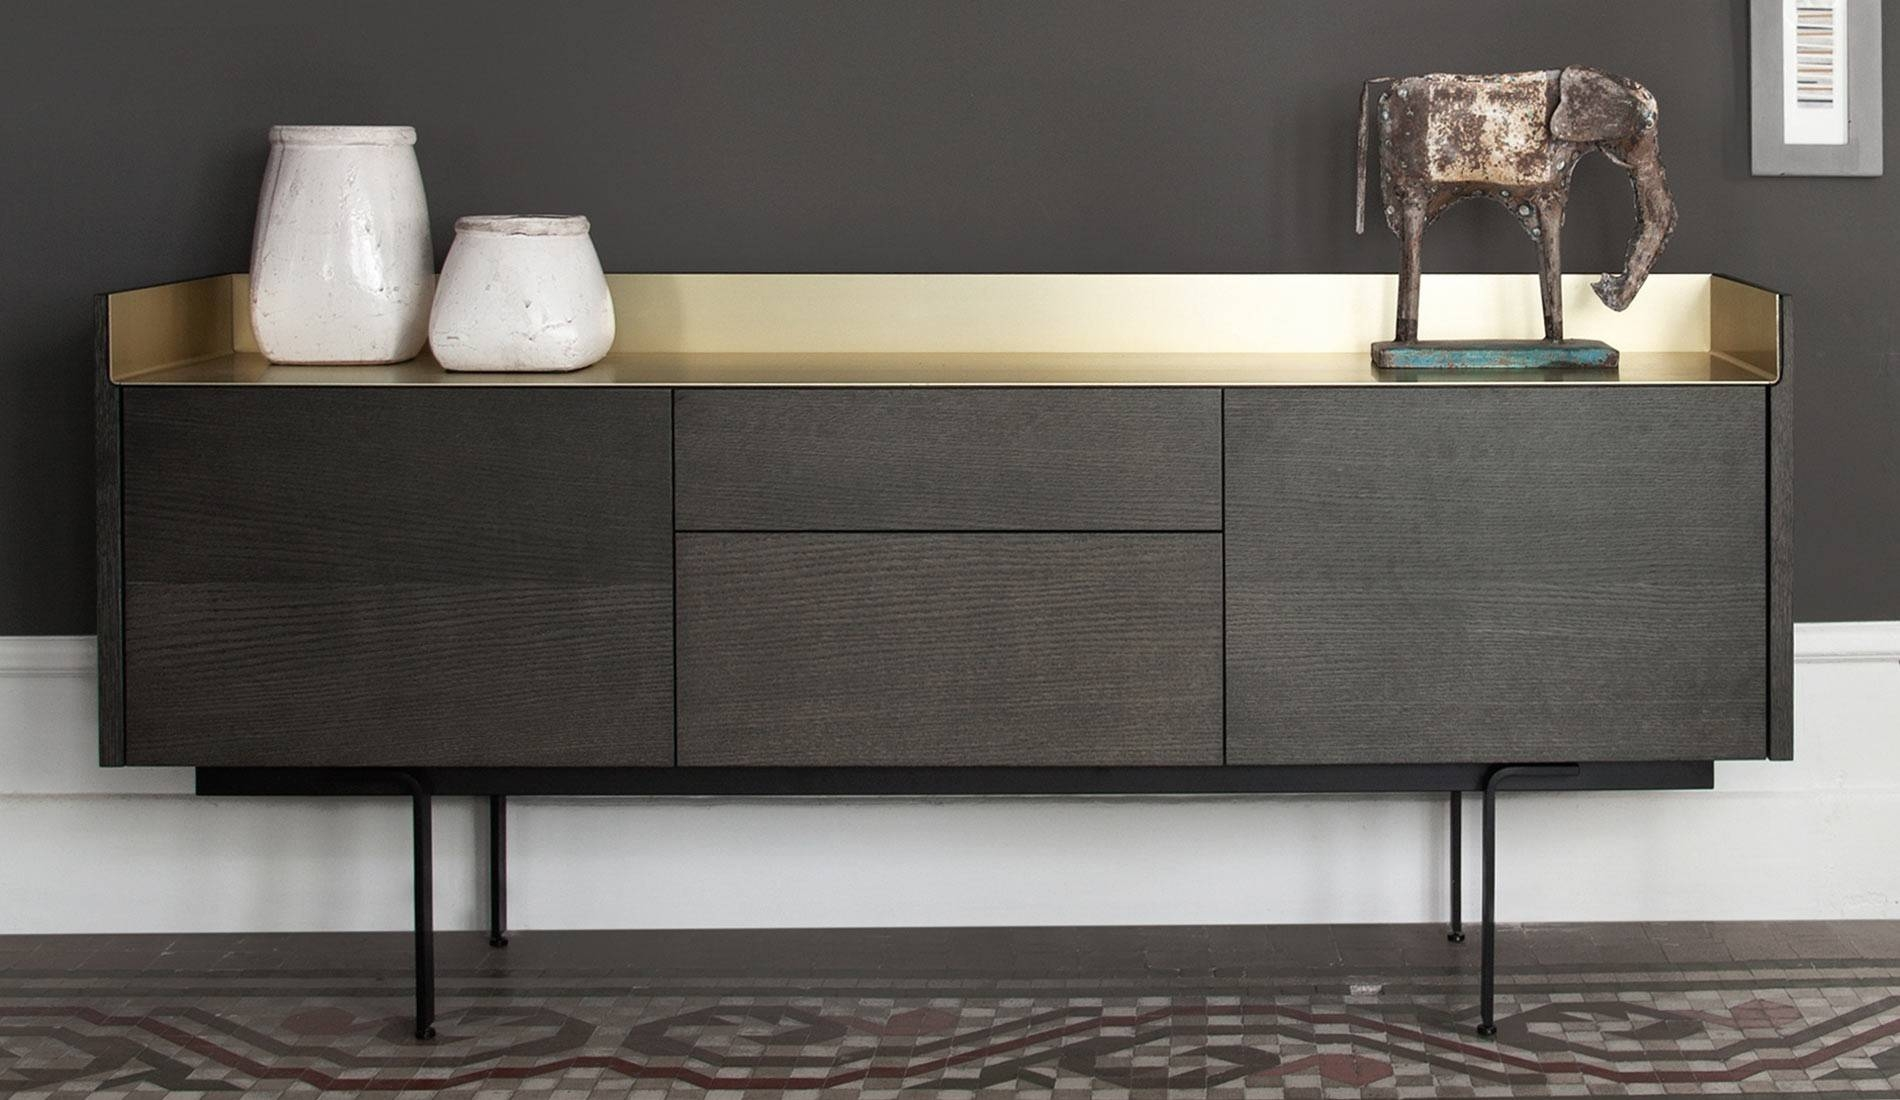 Punt Stockholm 3B Sideboard | Dopo Domani pertaining to Stockholm Sideboards (Image 6 of 15)